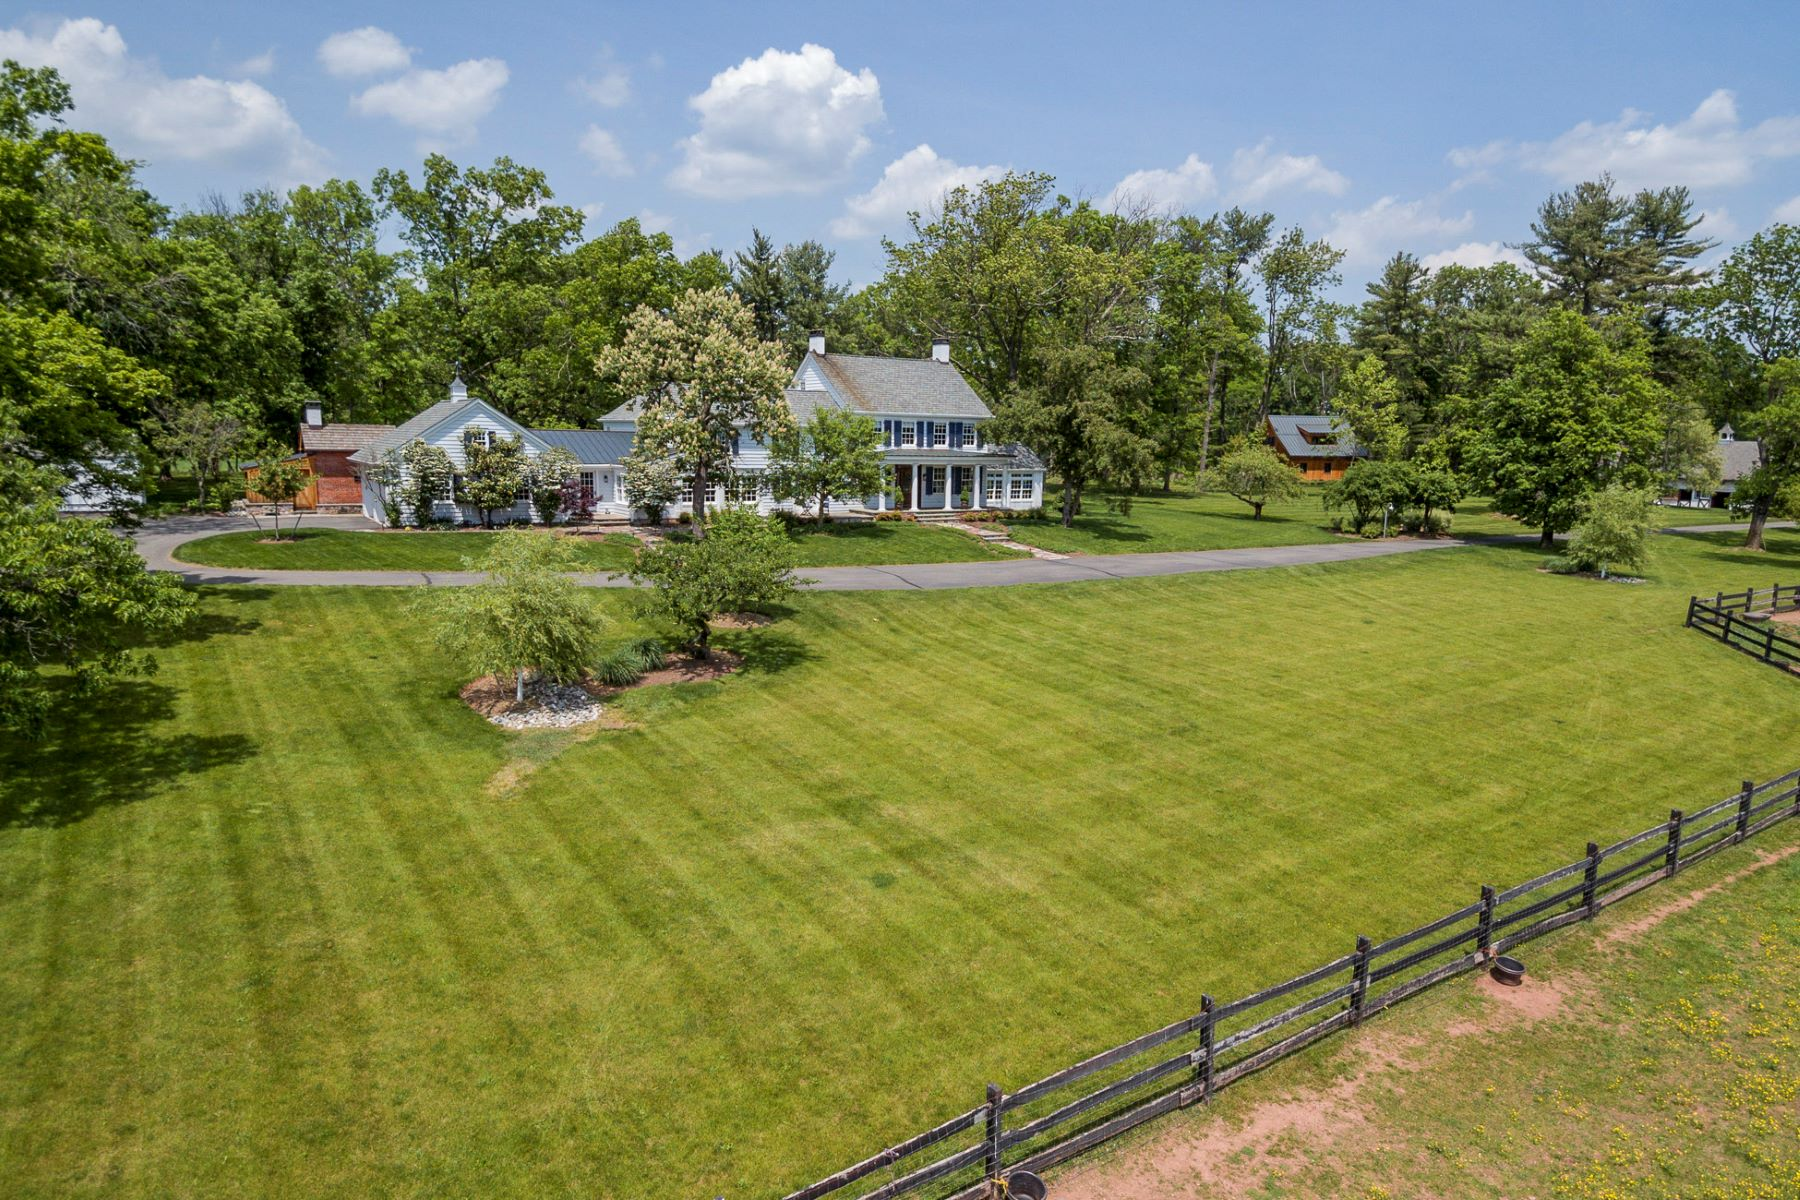 Частный односемейный дом для того Продажа на Historic Farm Reimagined for the Modern Equestrian - Hopewell Township 266 Province Line Road, Skillman, Нью-Джерси 08558 Соединенные ШтатыВ/Около: Hopewell Township